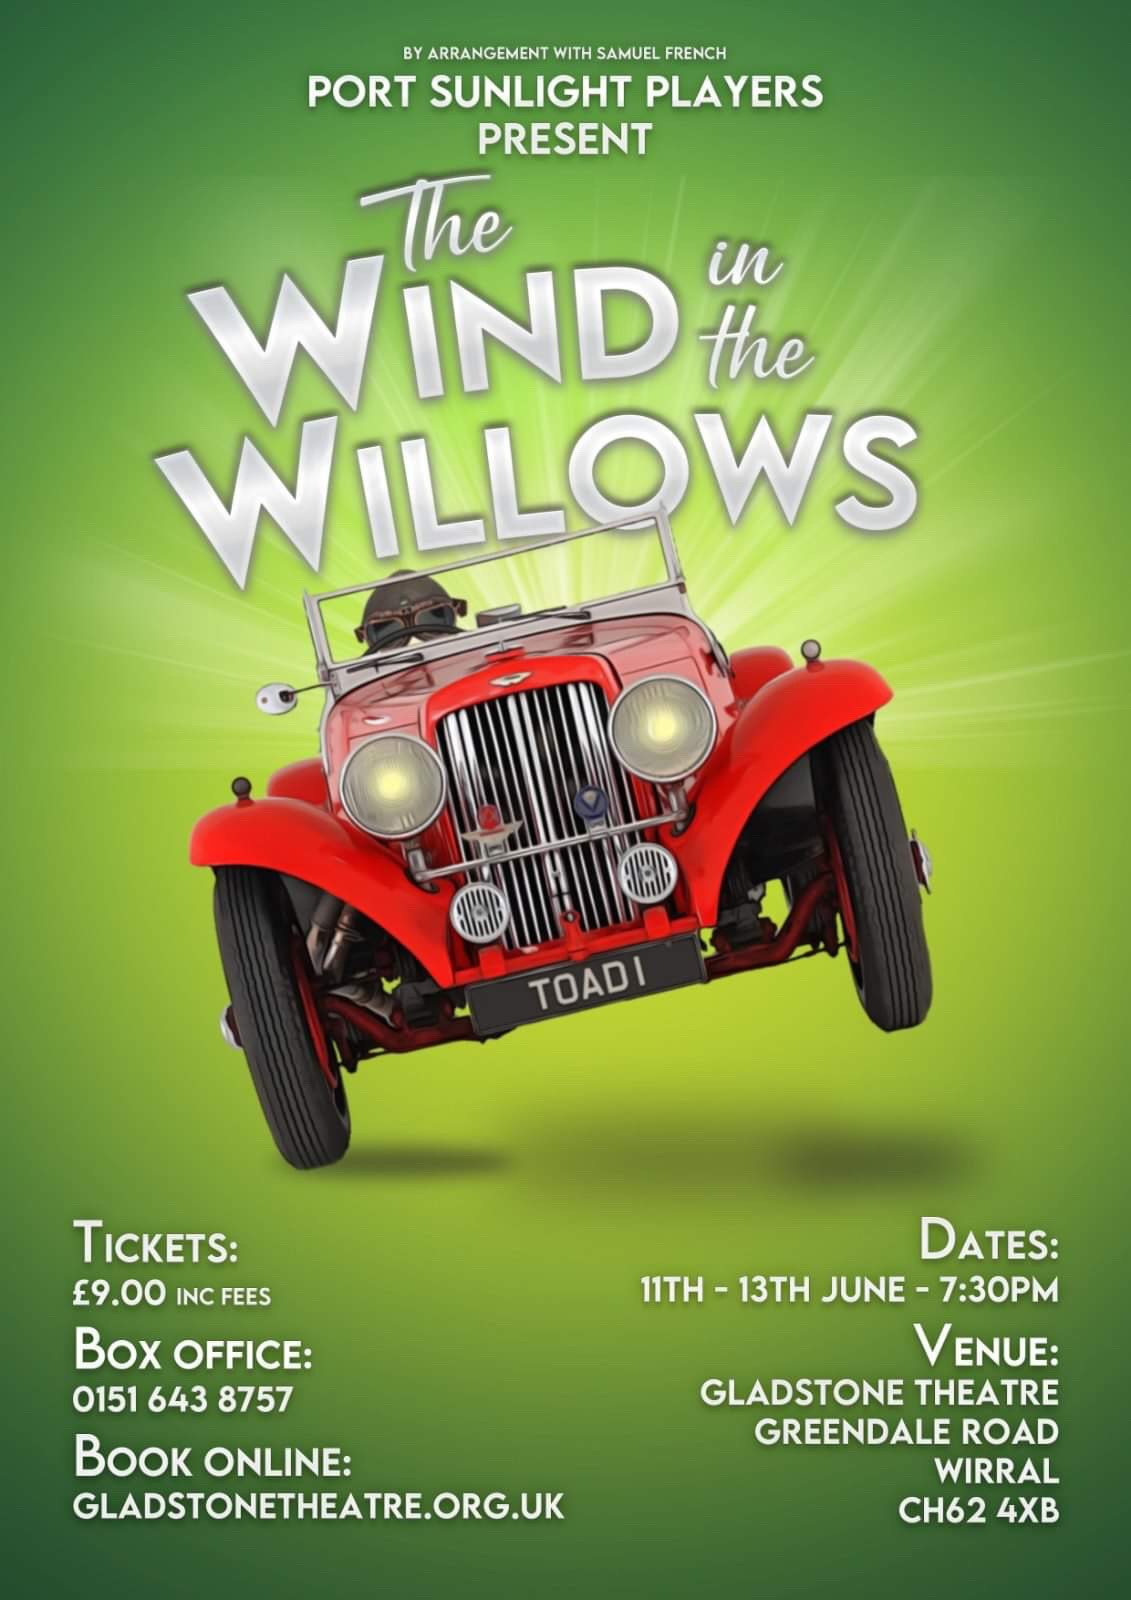 Wind in the willows June 2020 port sunlight Wirral